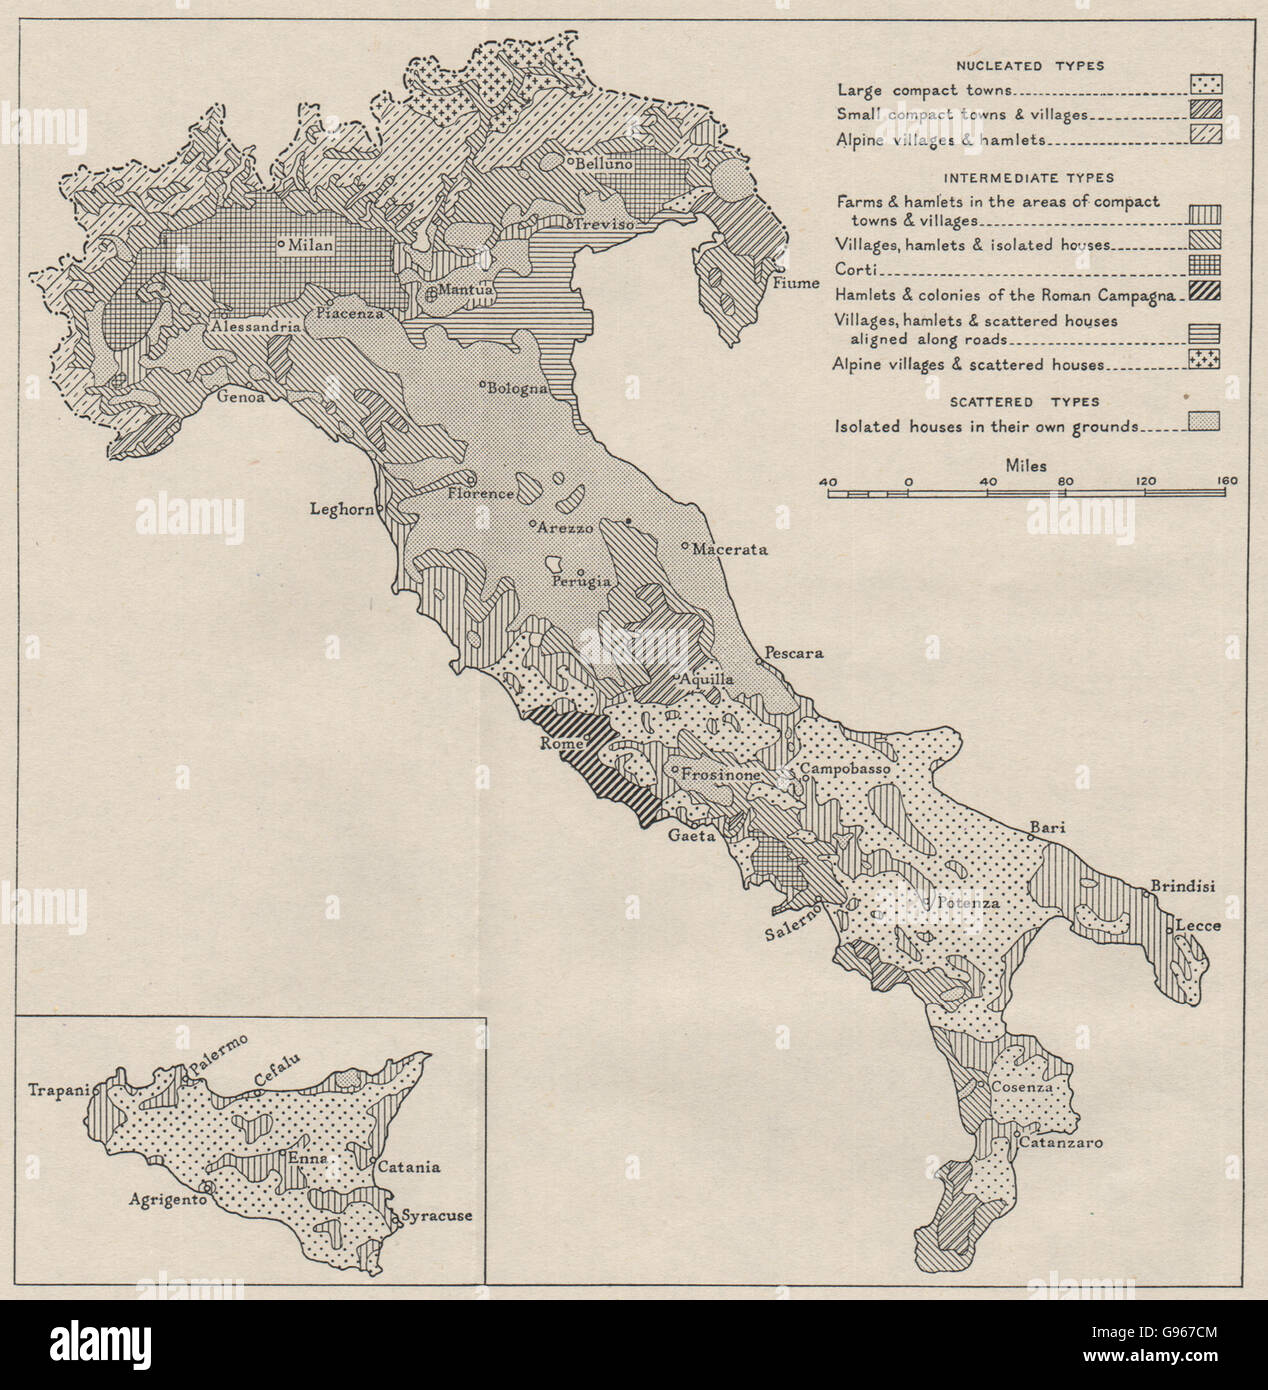 ITALY Types of rural settlement WW2 ROYAL NAVY INTELLIGENCE MAP